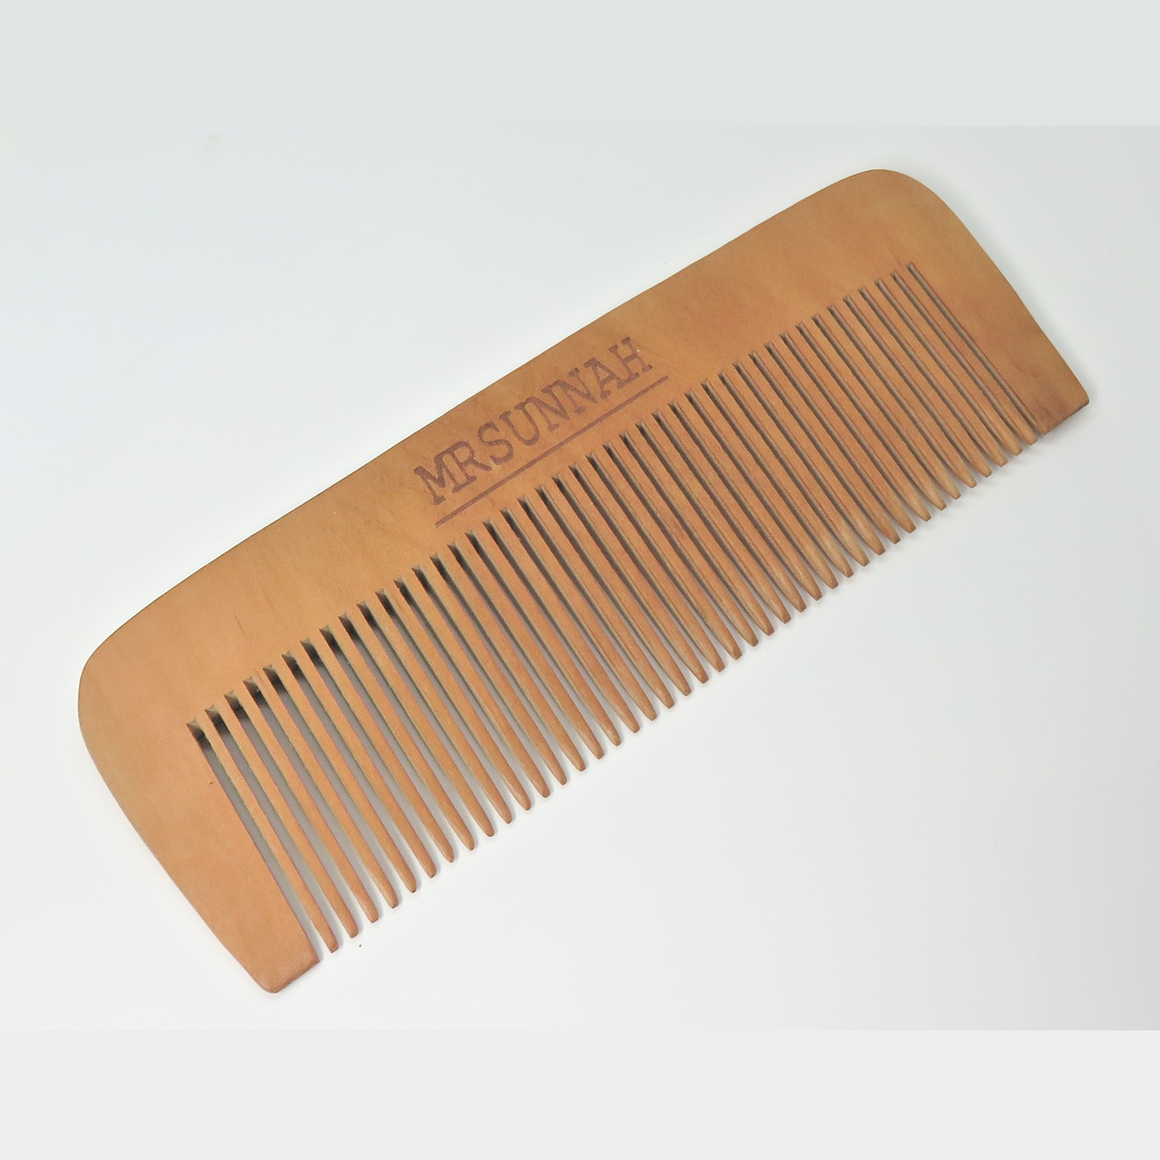 Long Beard Comb - Mrsunnah Grooming Co